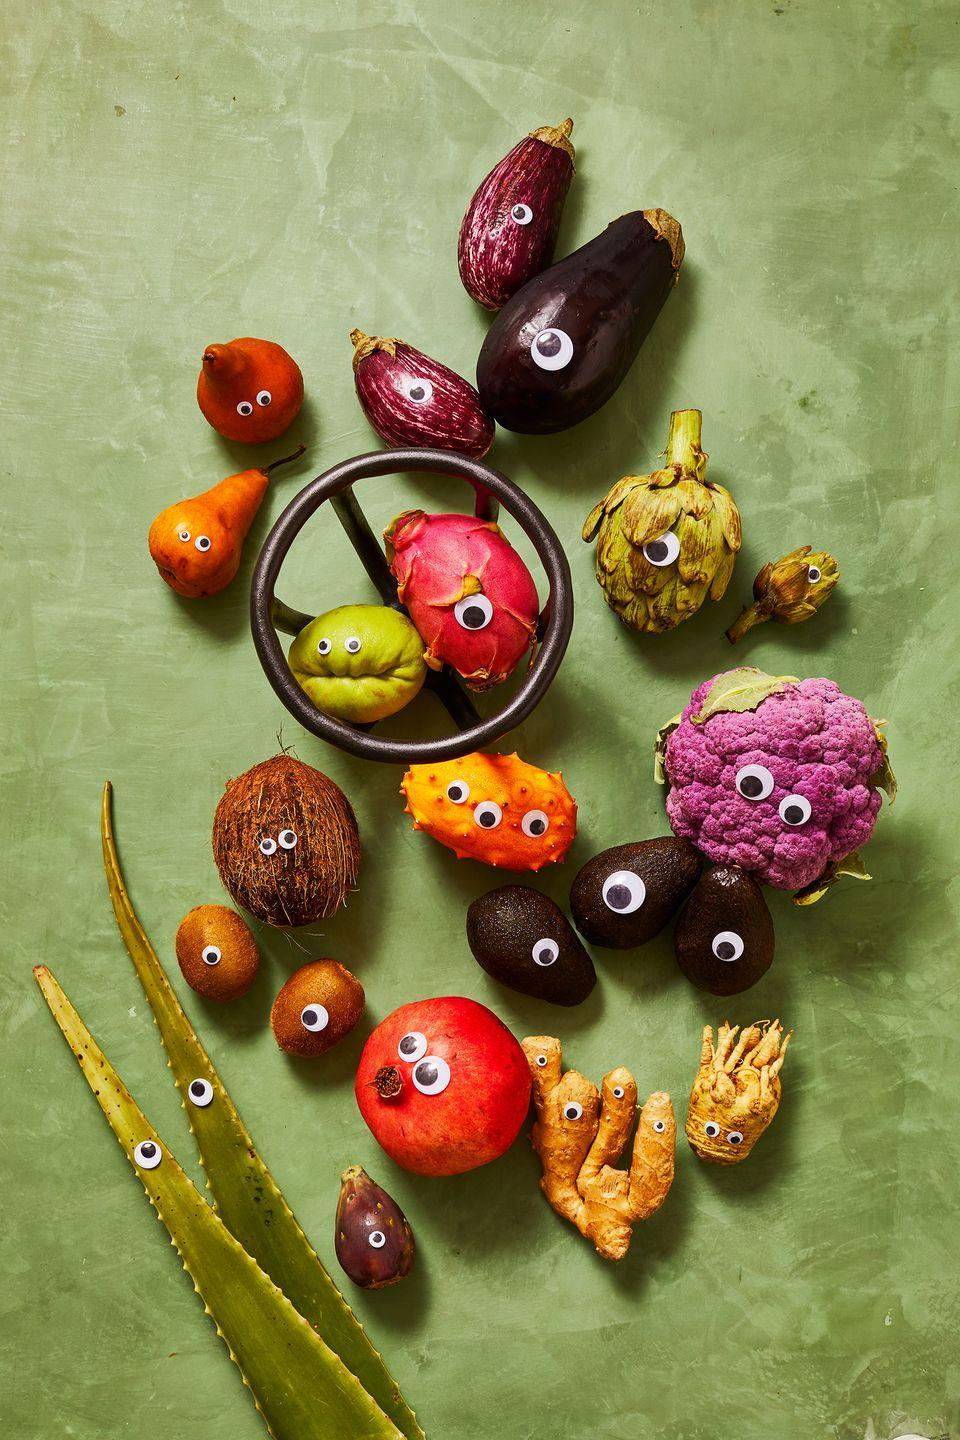 <p>Fruit and veggies, like eggplant, broccoli and kiwis, can easily become Halloween decor with the addition of plastic googly eyes. </p>